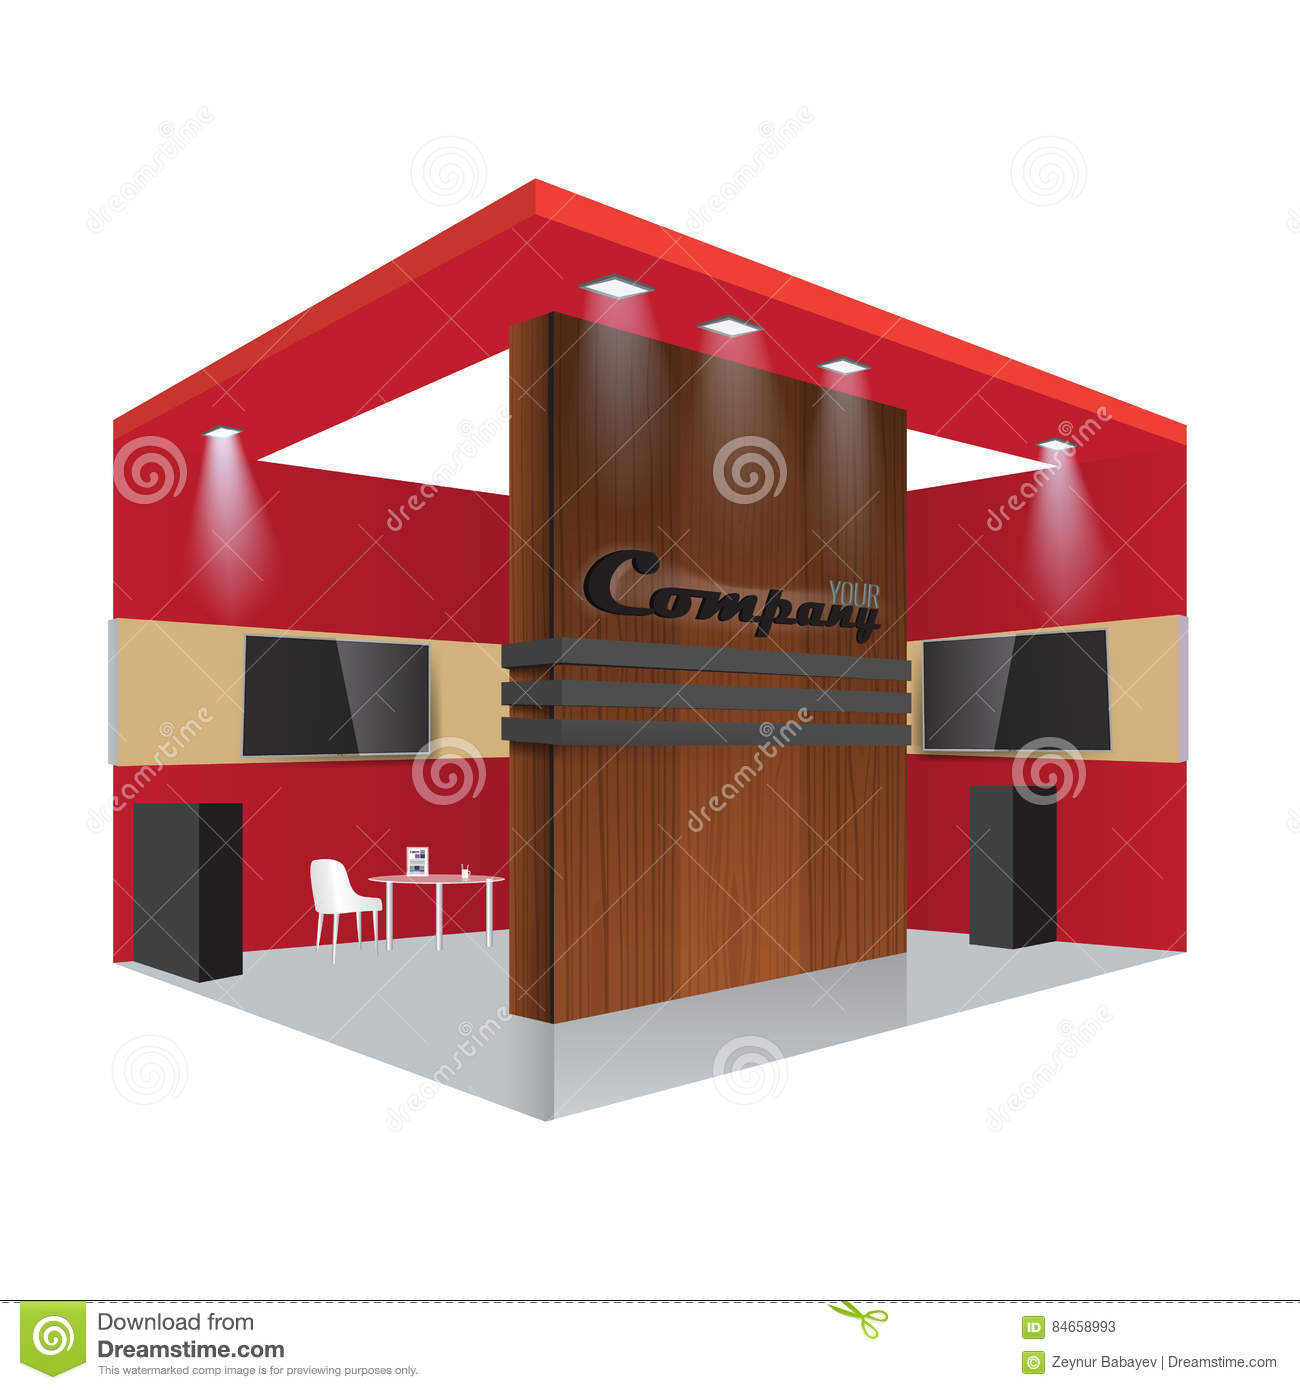 Download Free Mock Up Exhibition Stand : Creative exhibition stand design booth template